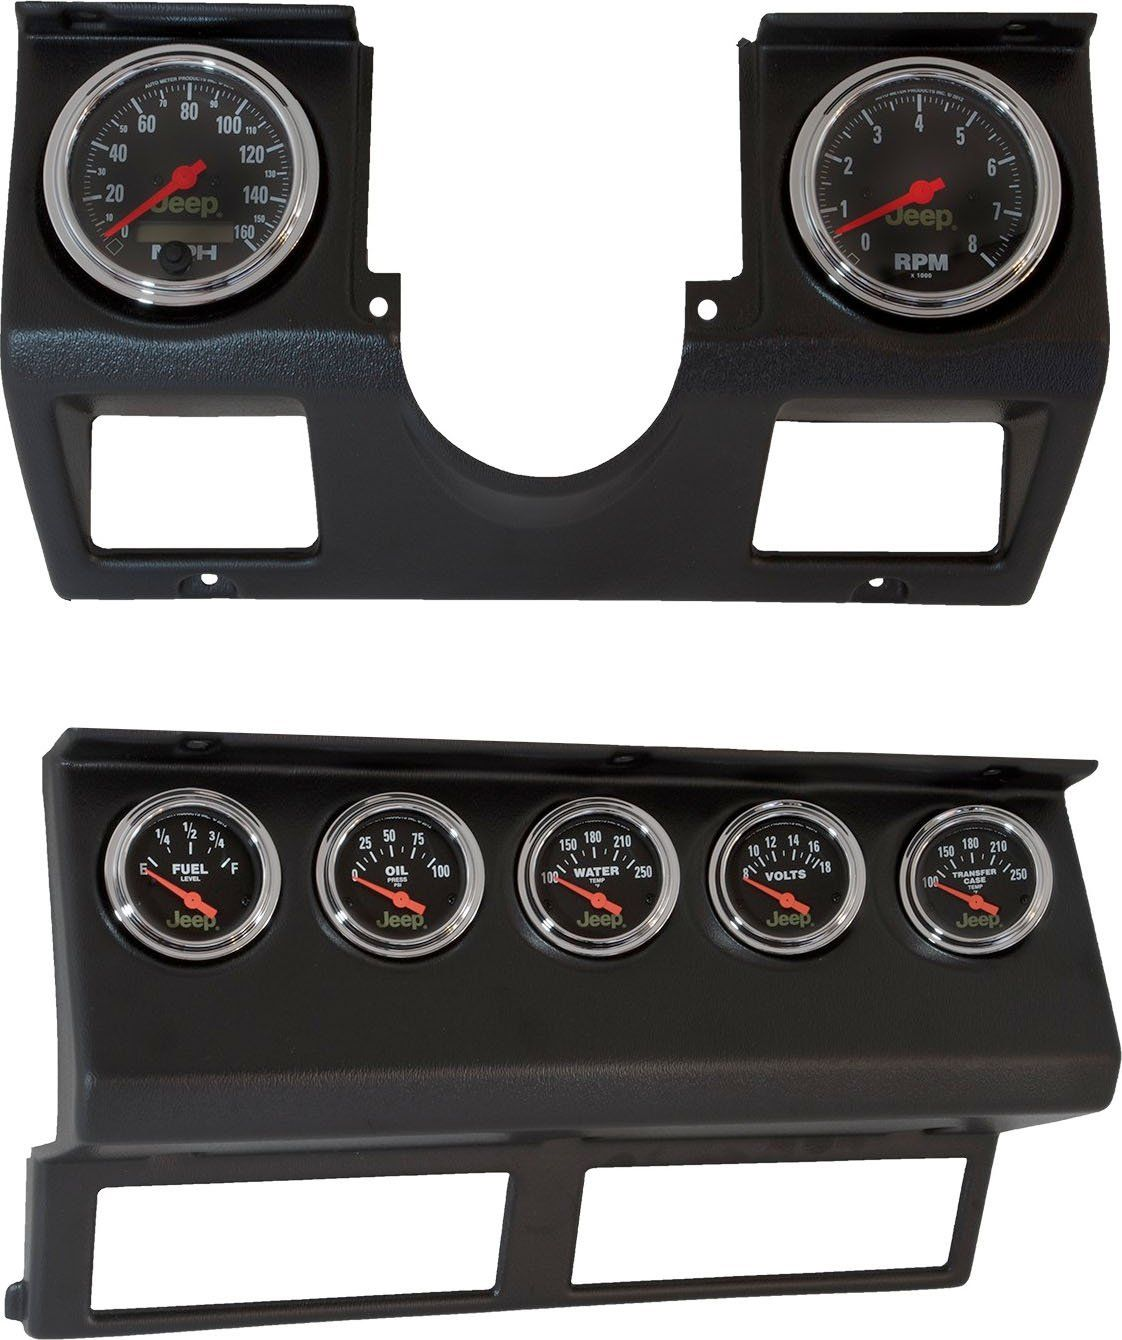 Auto Meter 7040 Dash Panel With Gauges For 87 95 Jeep Wrangler Yj